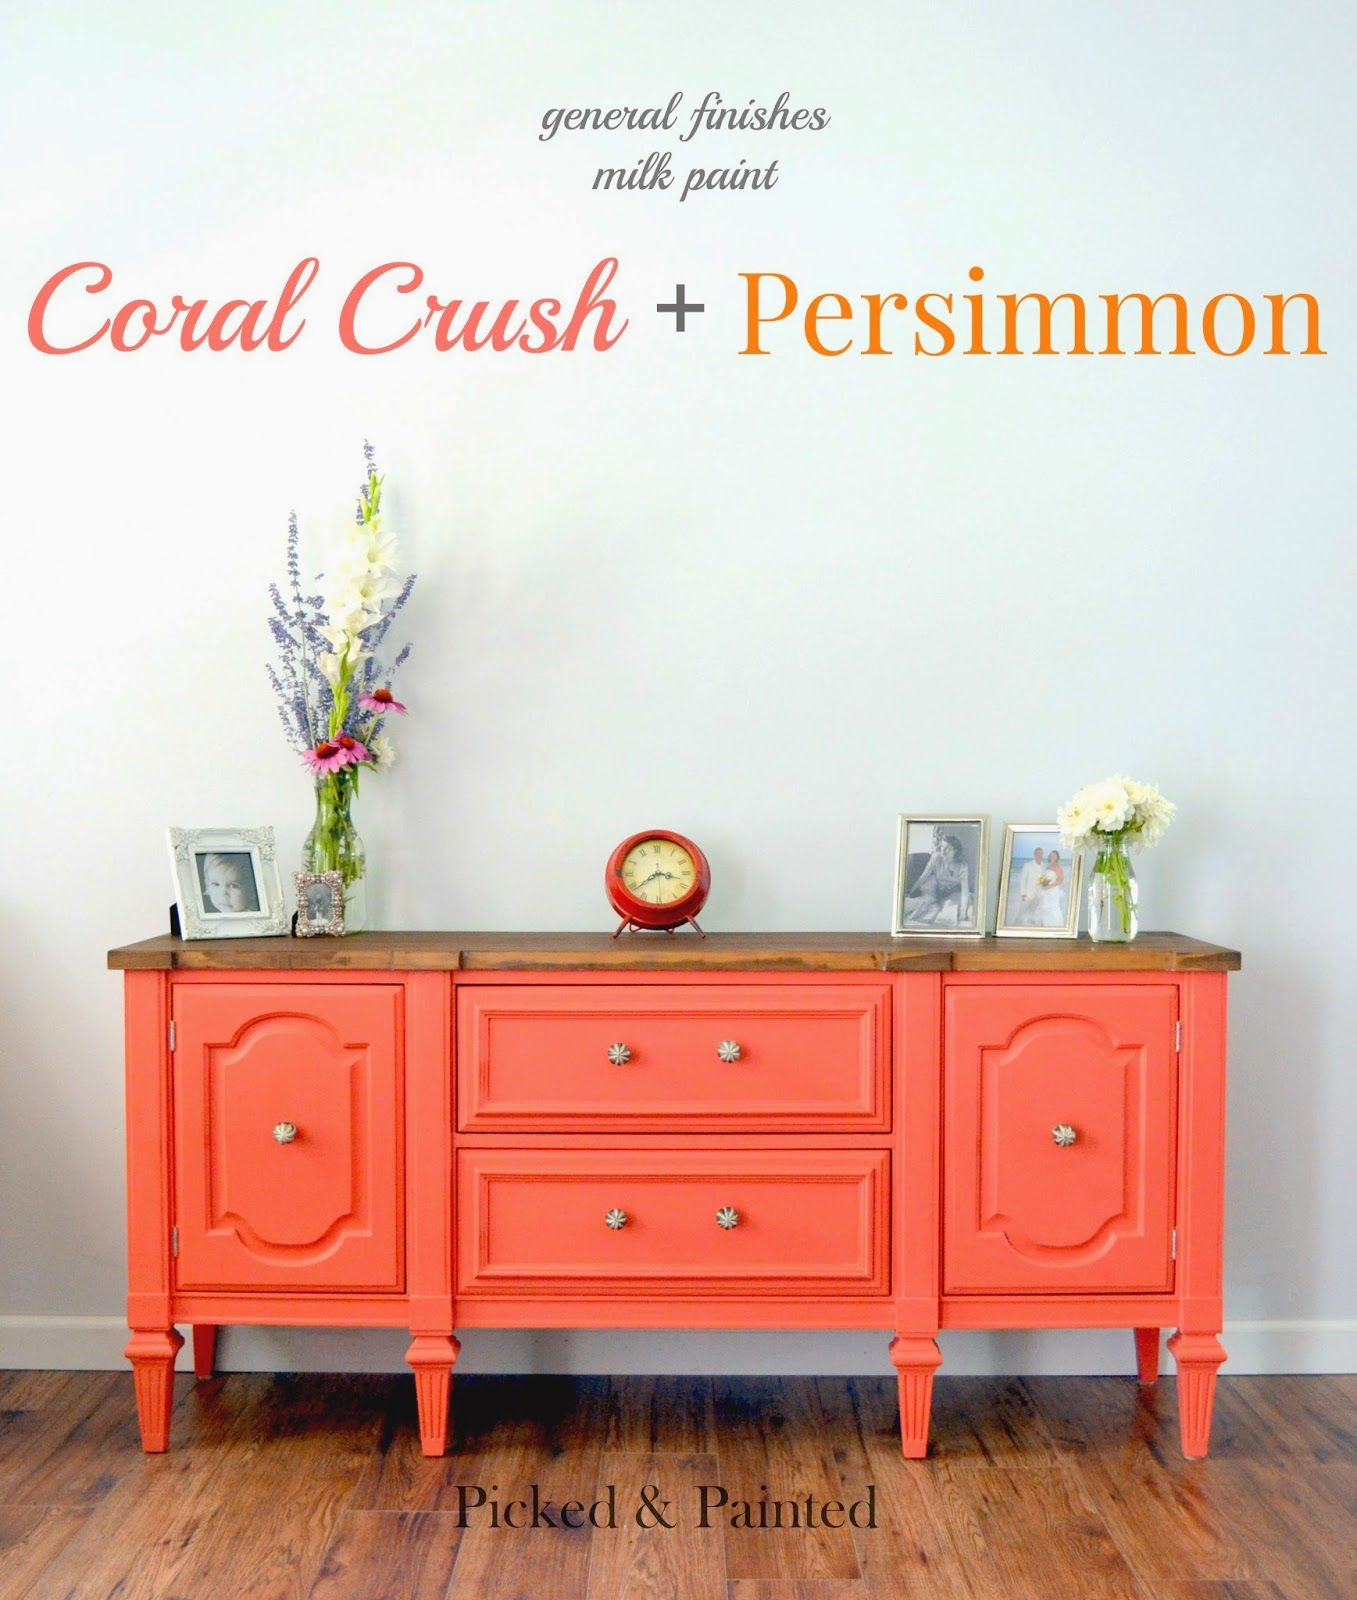 Delicieux Picked U0026 Painted: Coral Crush + Persimmon Buffet Good Milk Paint Info